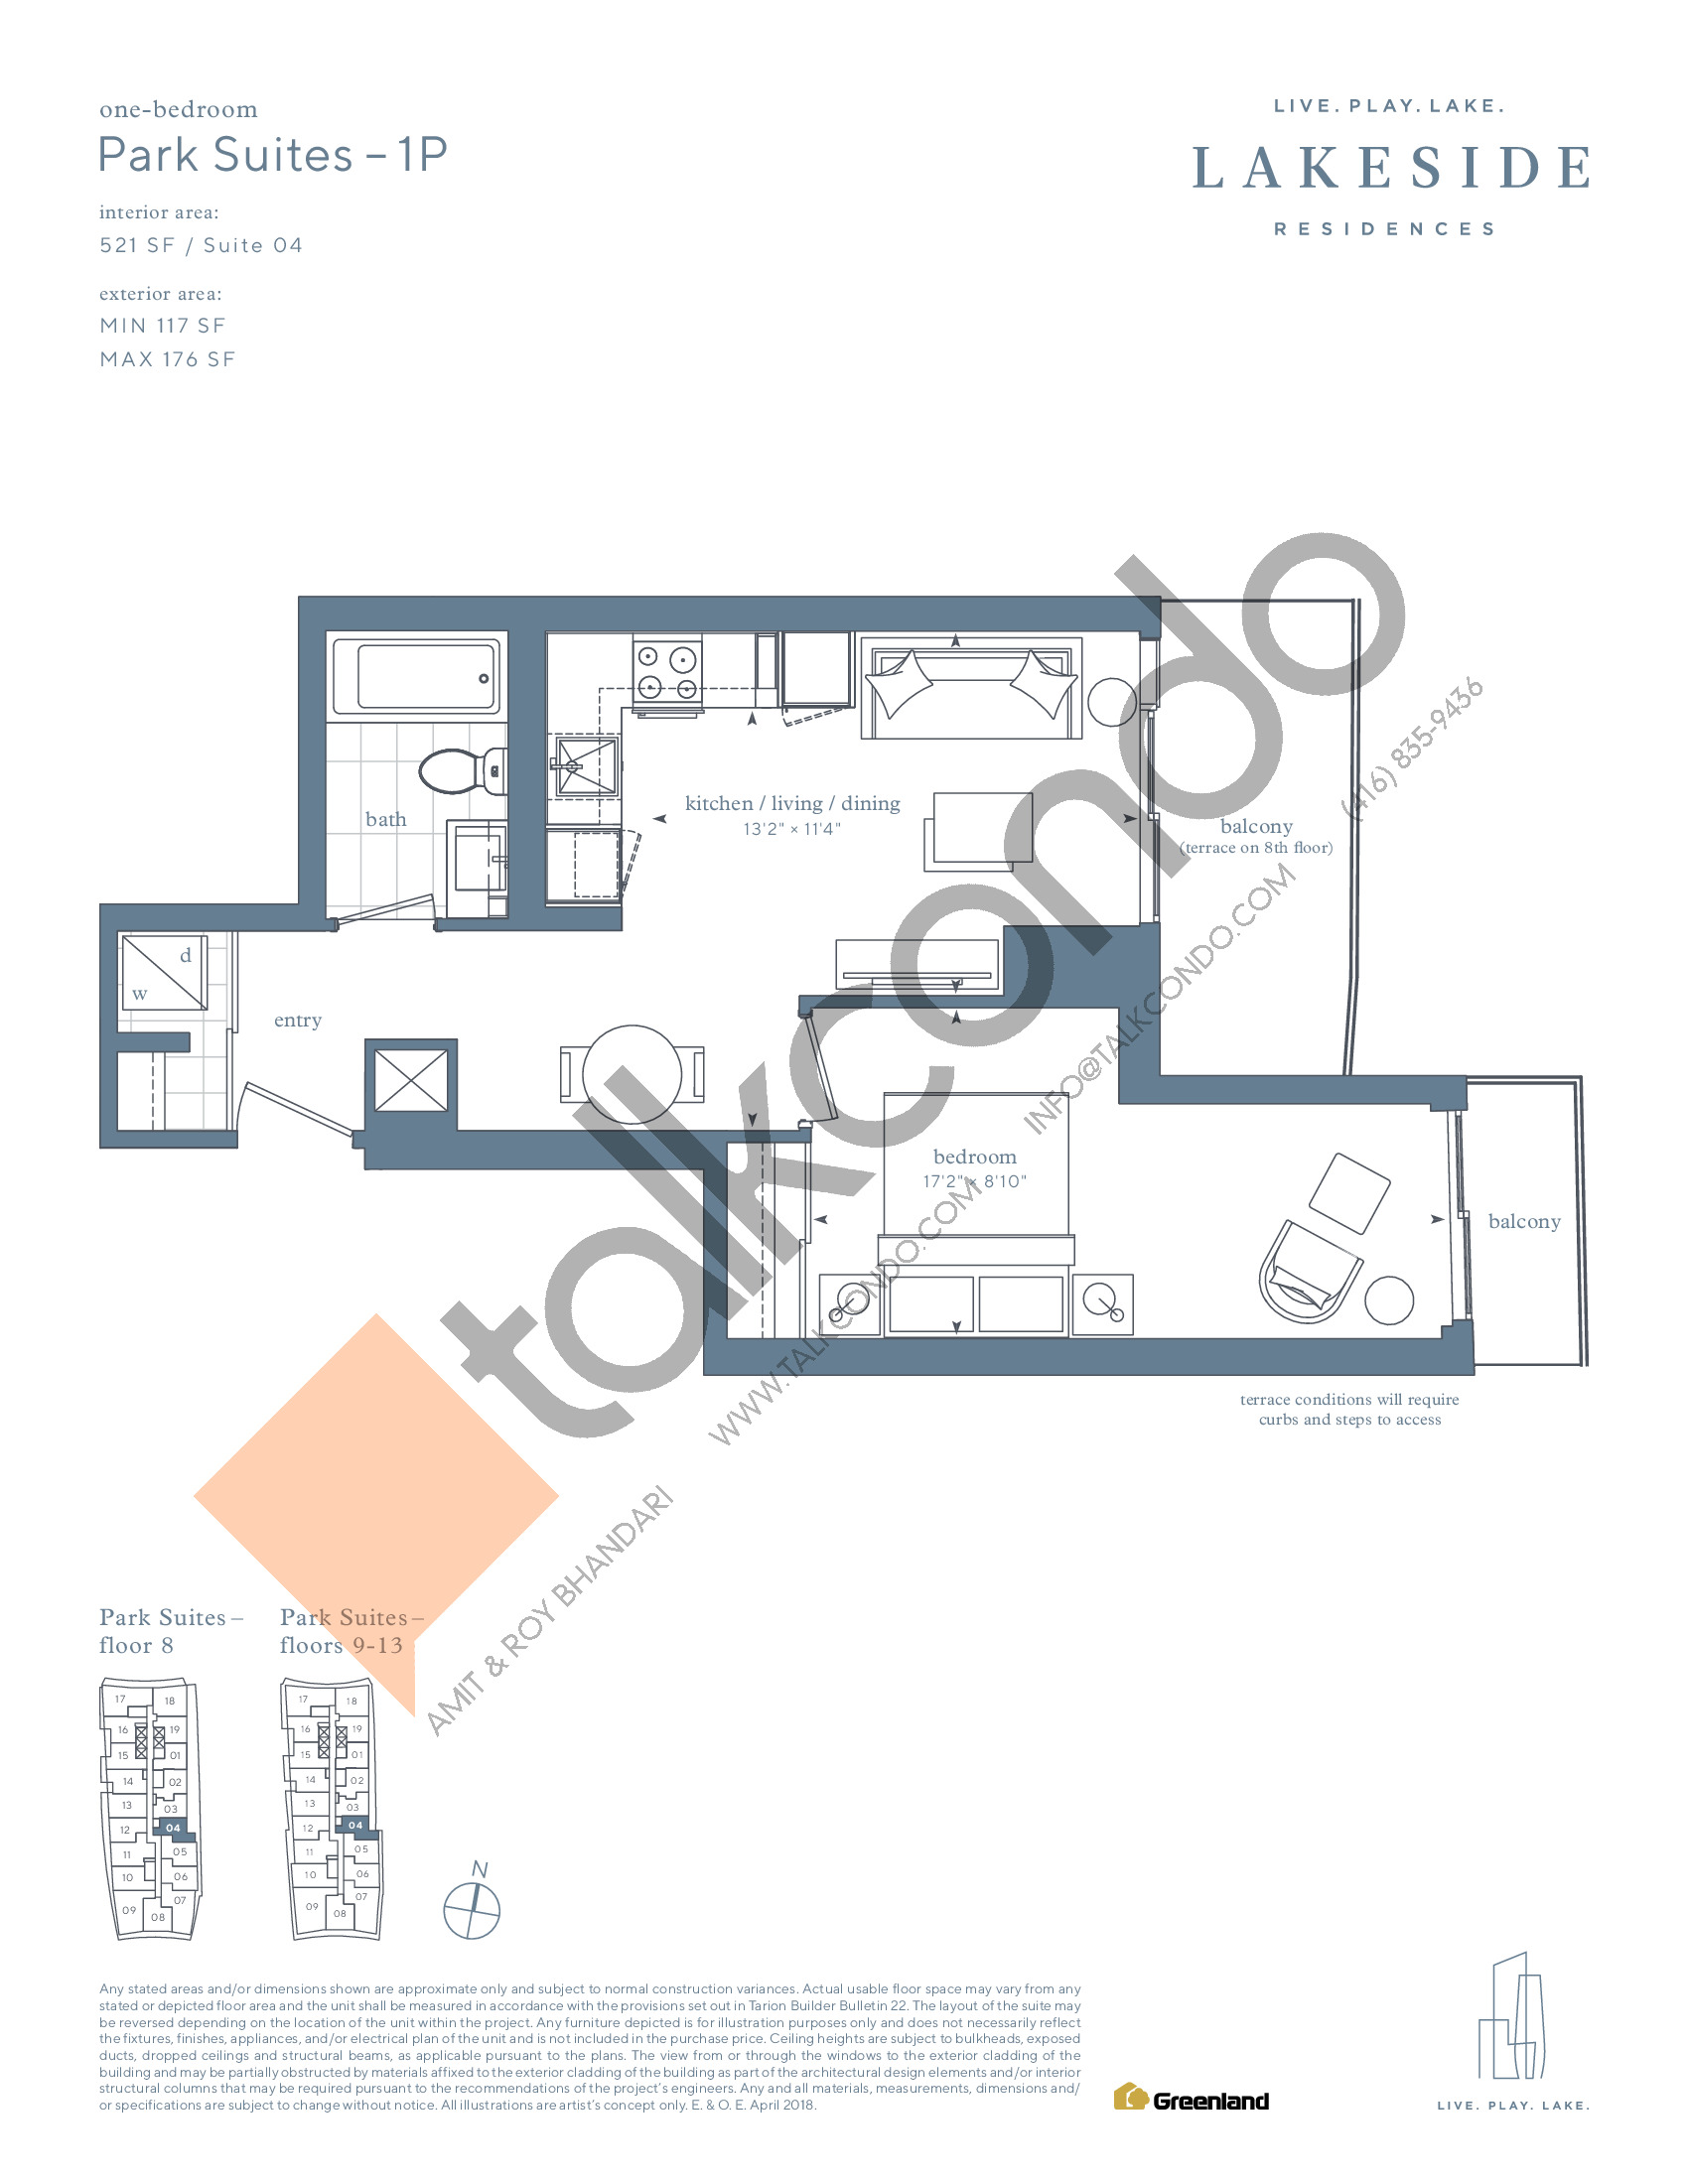 Park Suites - 1P Floor Plan at Lakeside Residences - 521 sq.ft